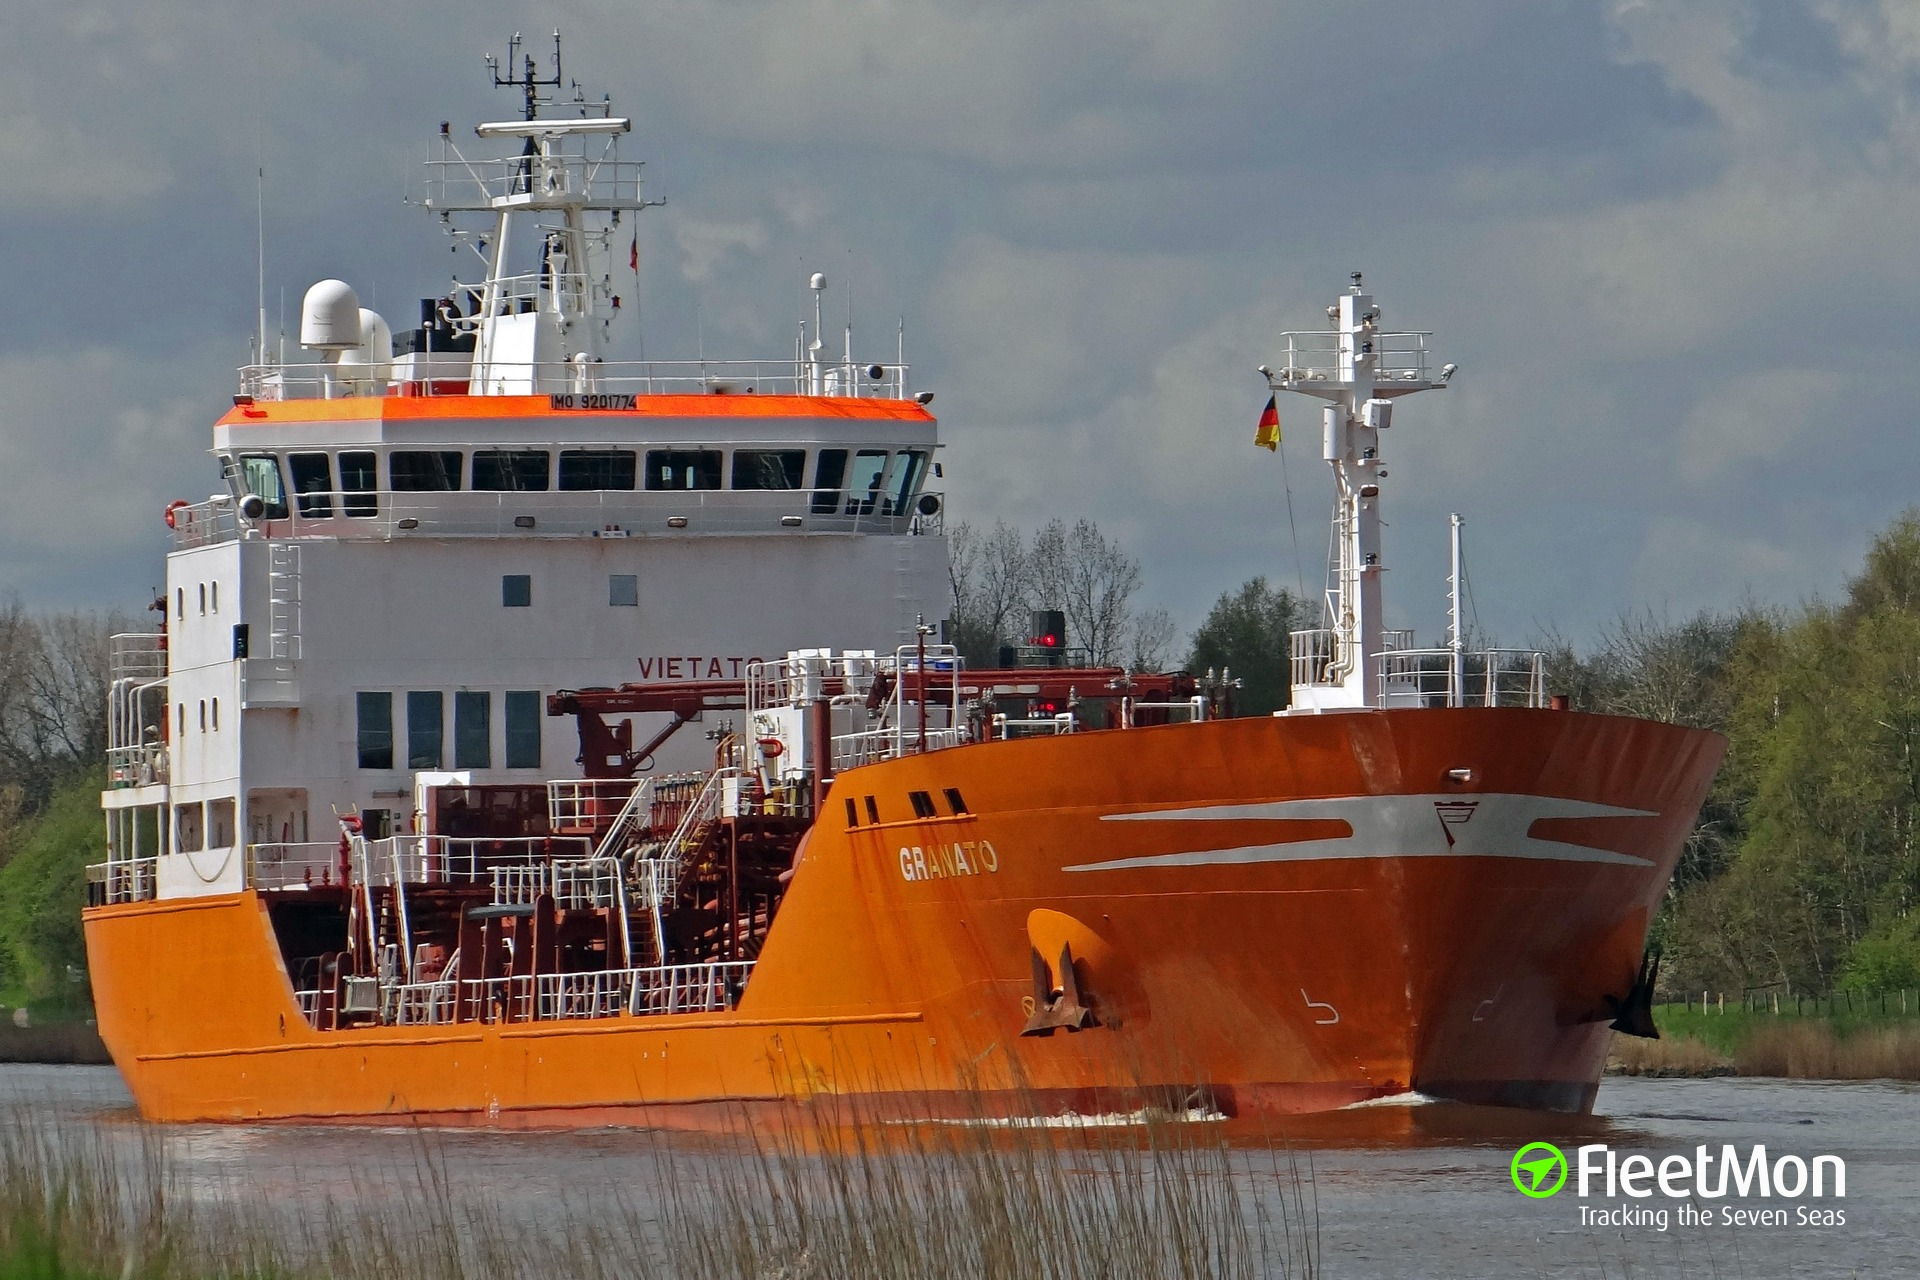 Product tanker Granato under quarantine in Spain after one crew died from infectious disease